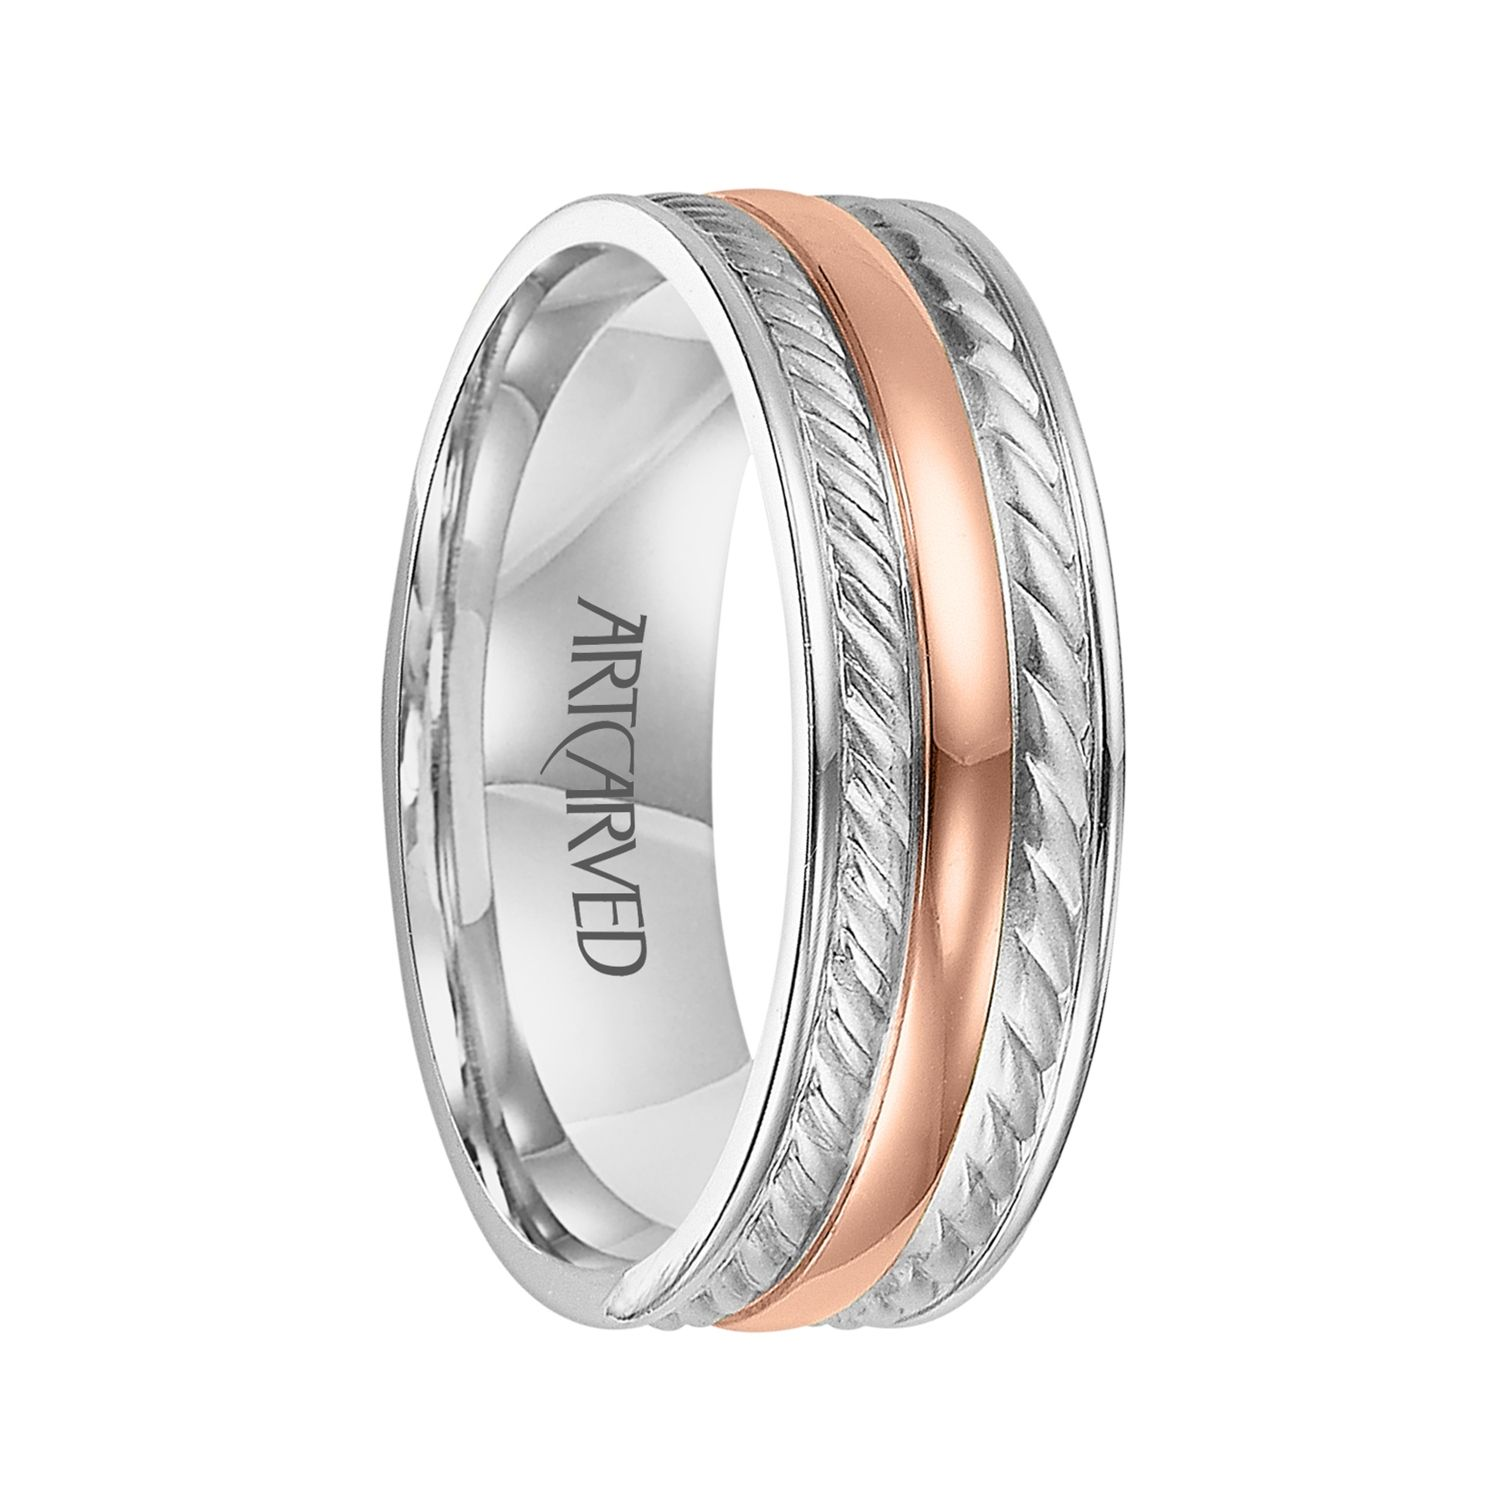 mens platinum wedding rings ArtCarved Rings DIXON Two Tone 14K White Gold Ring with Rose Wedding Rings Rose GoldMen